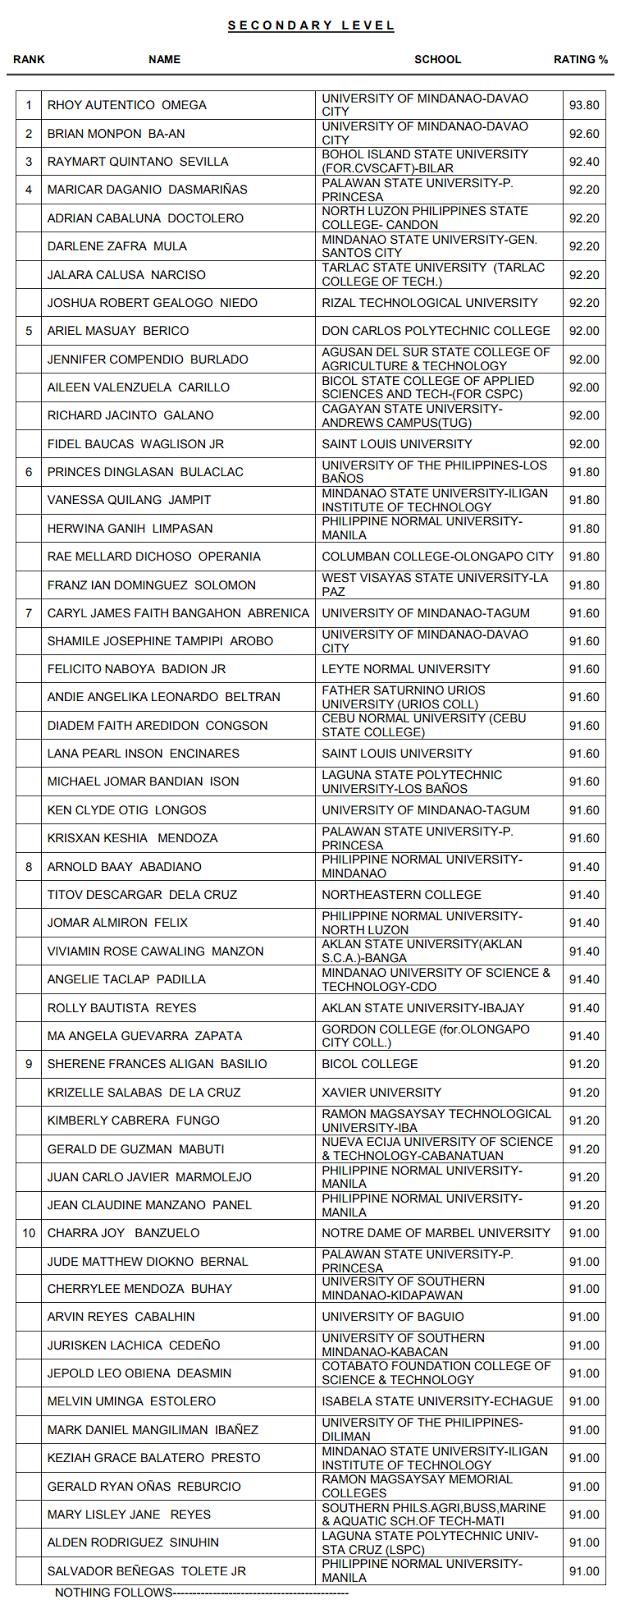 Top 10 Examinees September 2017 LET Secondary Level